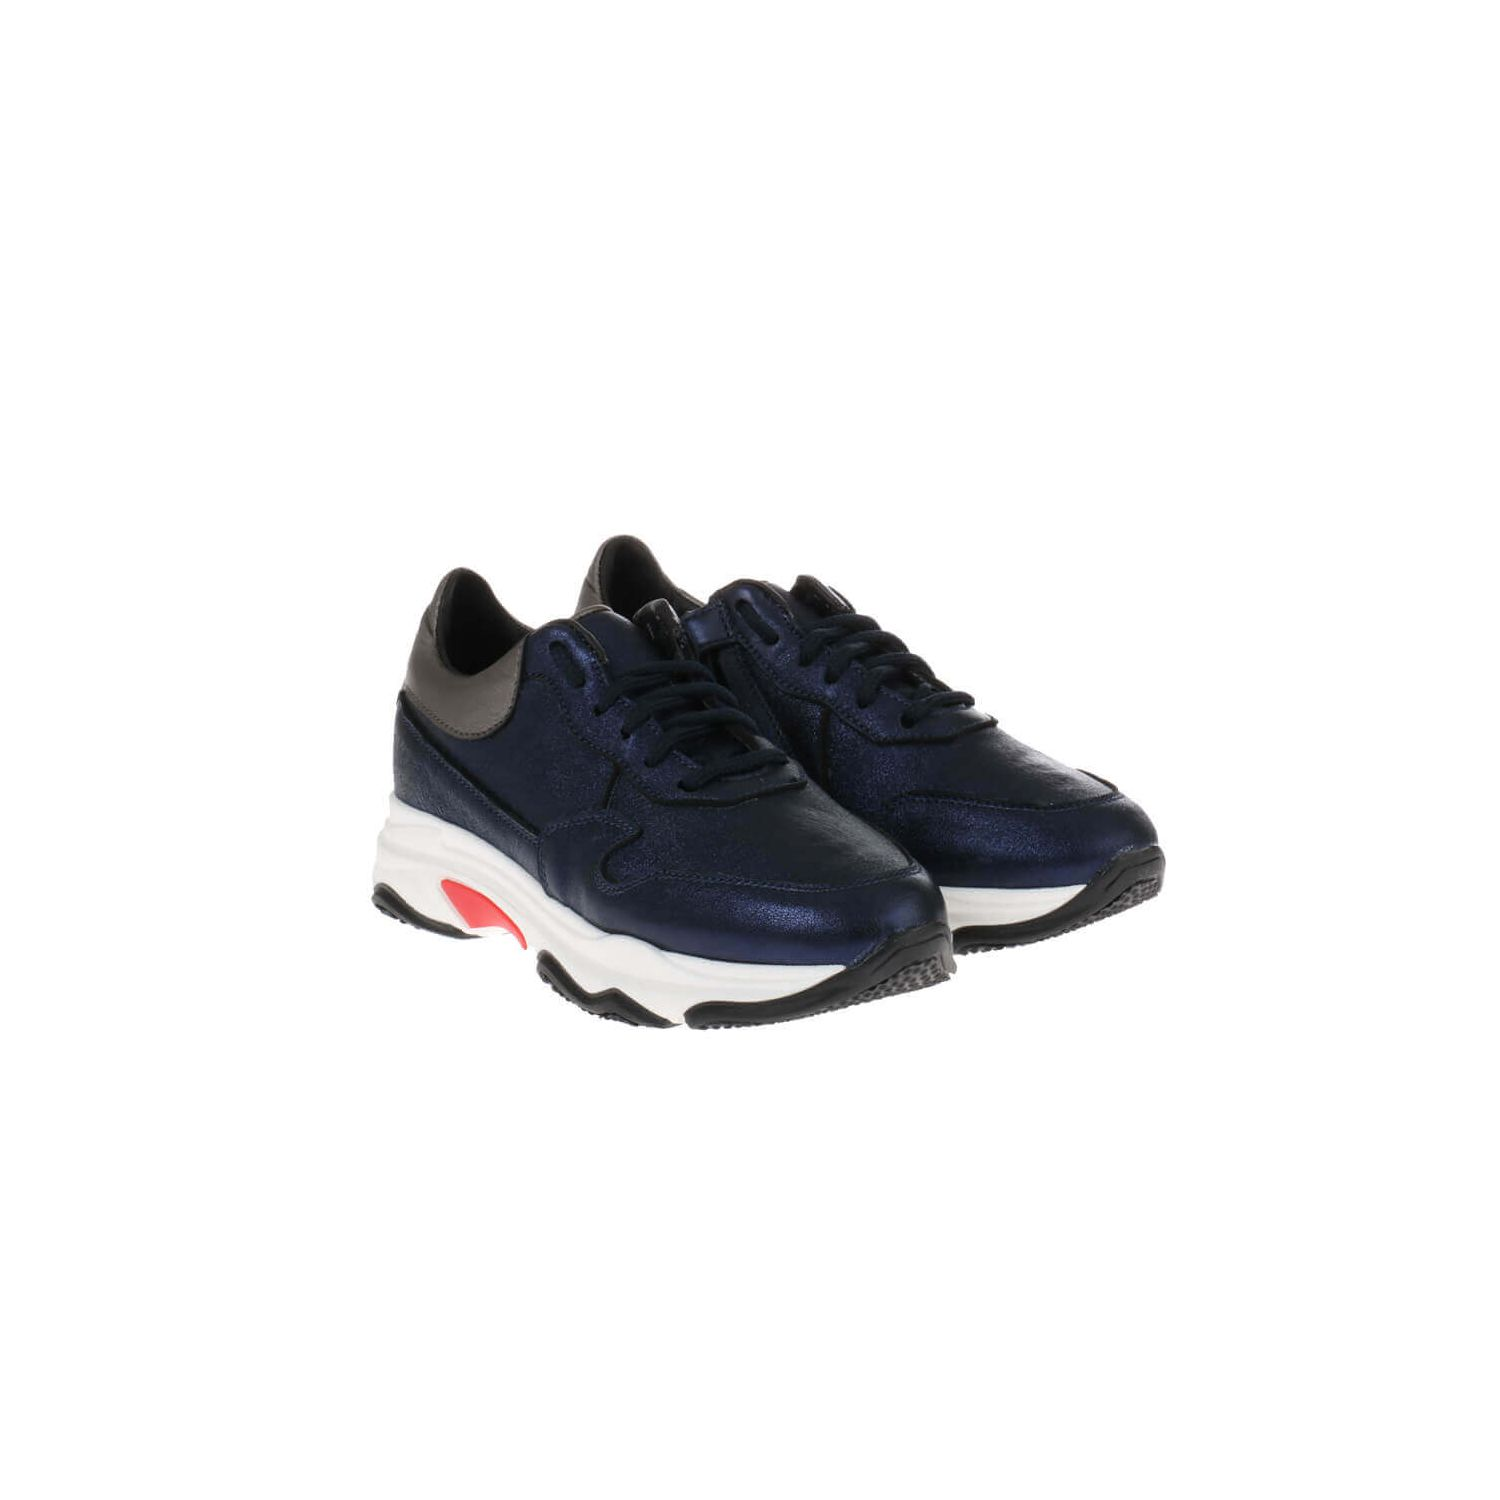 HIP H1748 Sneakers Blauw Metallic